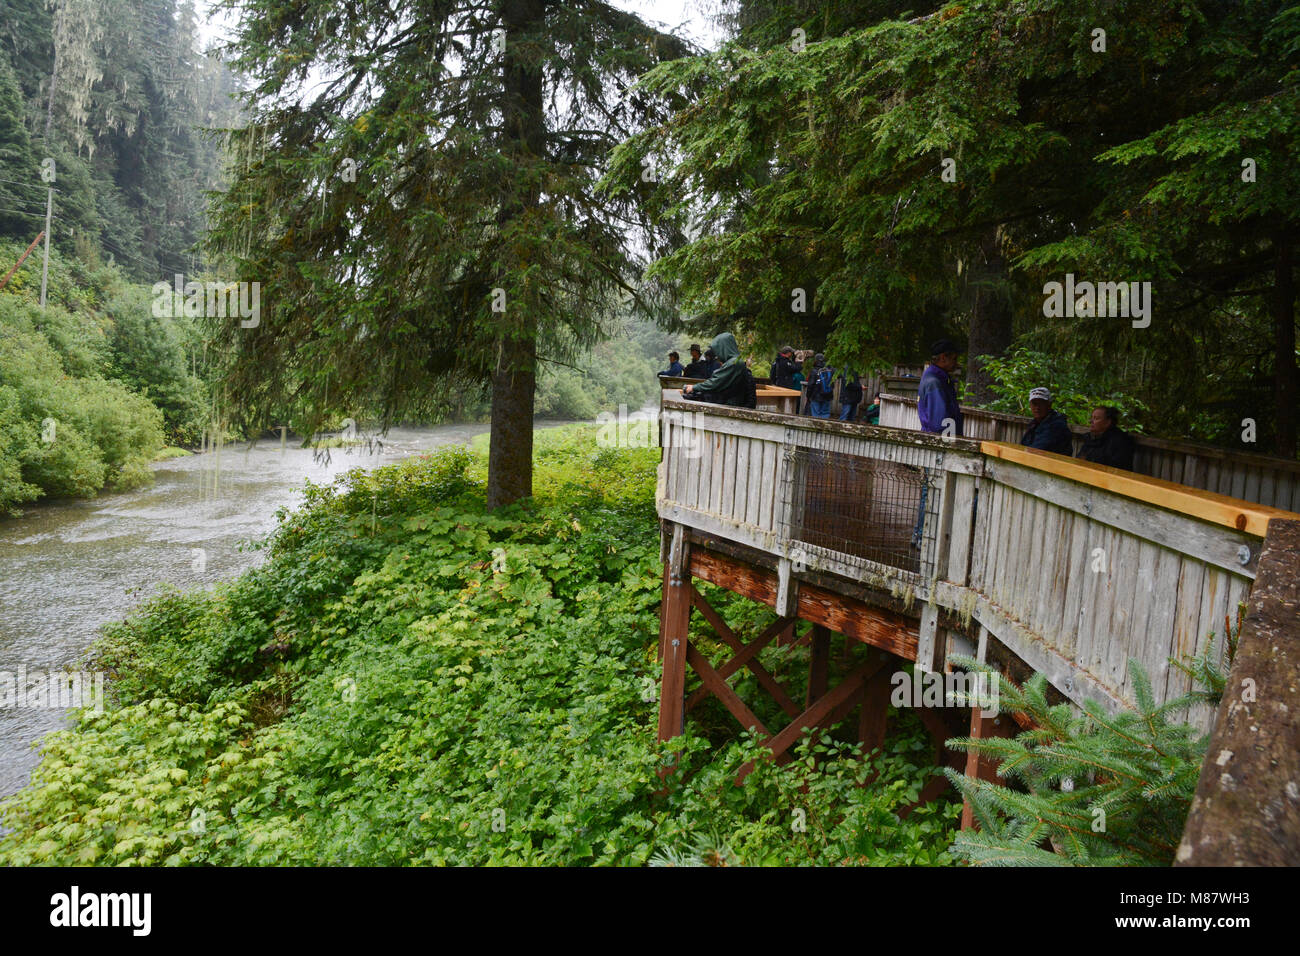 Tourists on the bear viewing platform at the Fish Creek Wildlife Observation Site, in the Tongass National Forest, - Stock Image